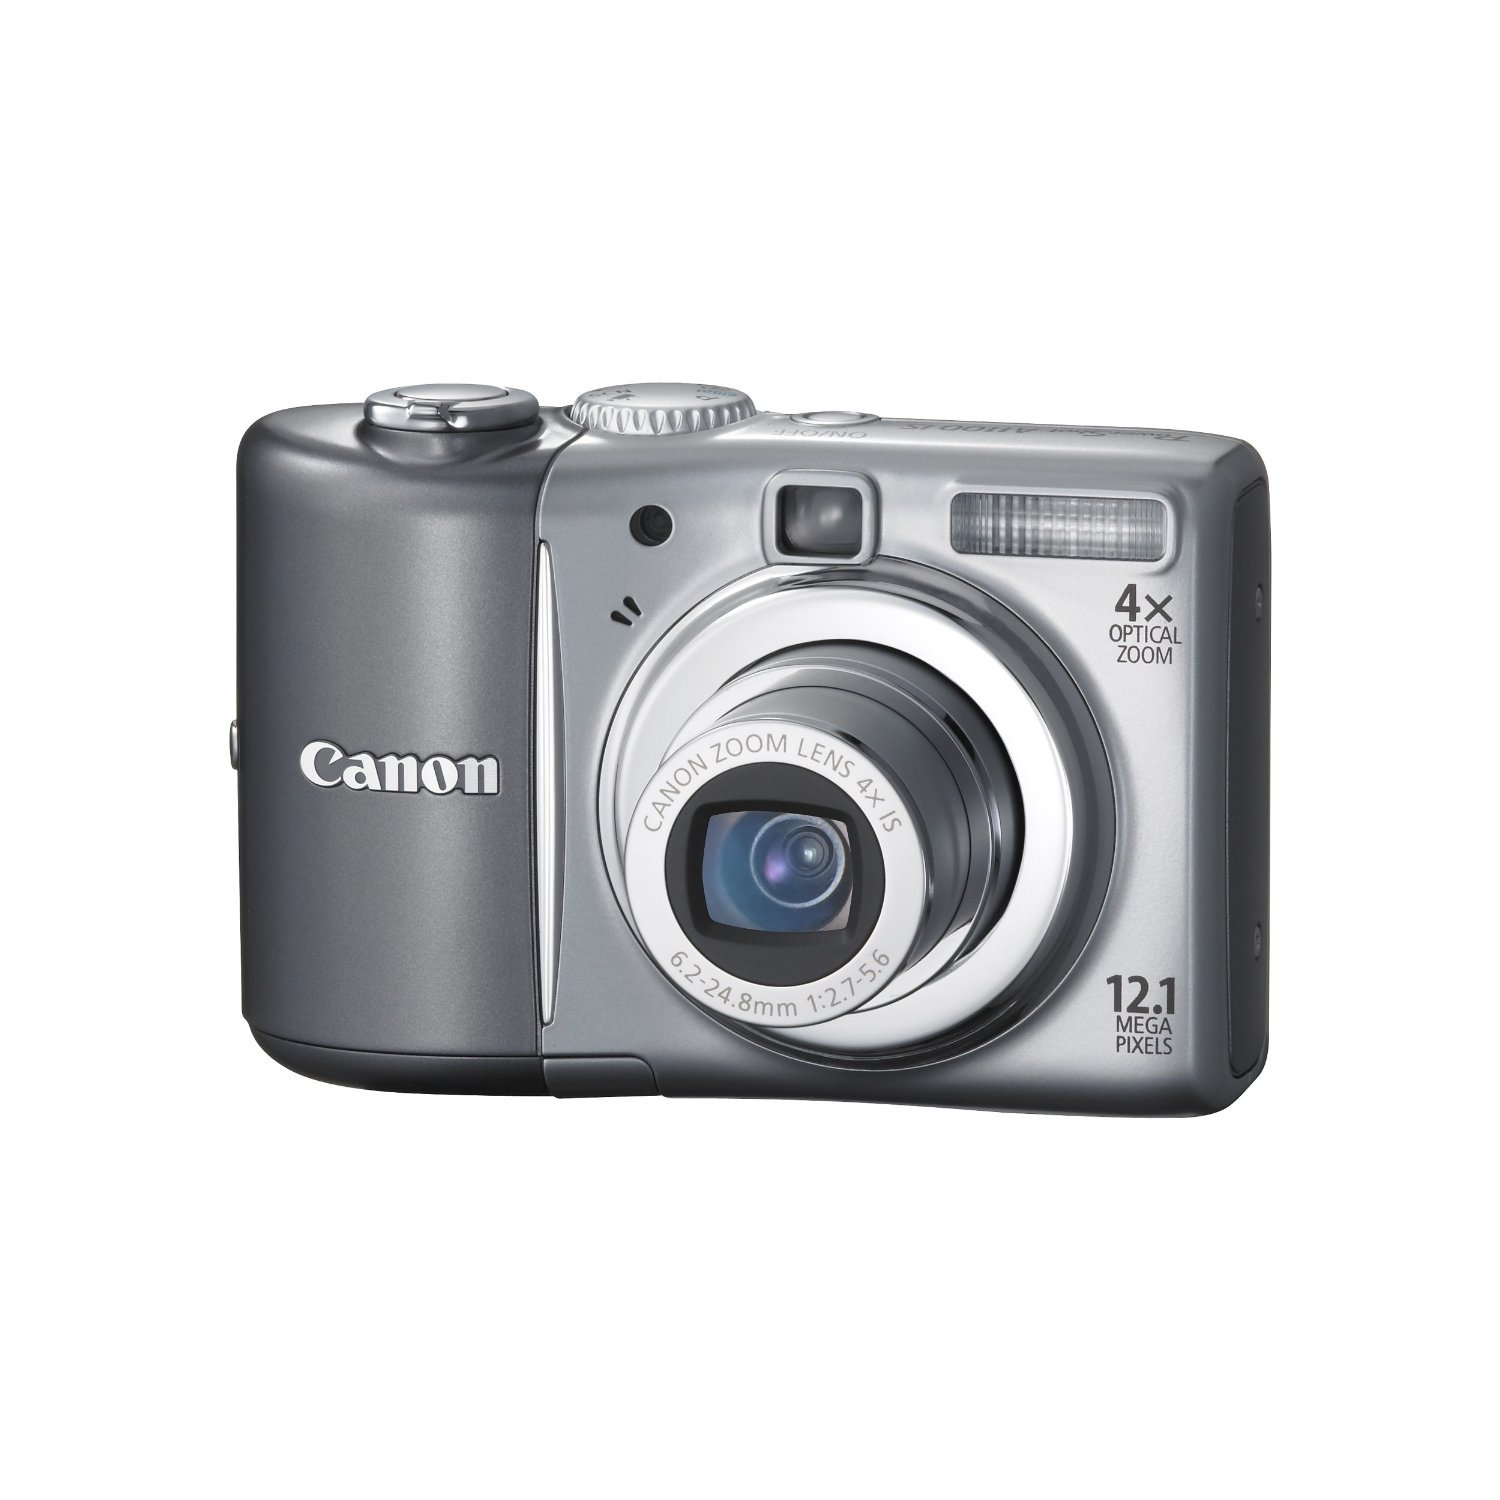 Canon PowerShot A1100IS 12.1 MP Digital Camera, 4x Optical Image Stabilized Zoom, 2.5-inch LCD